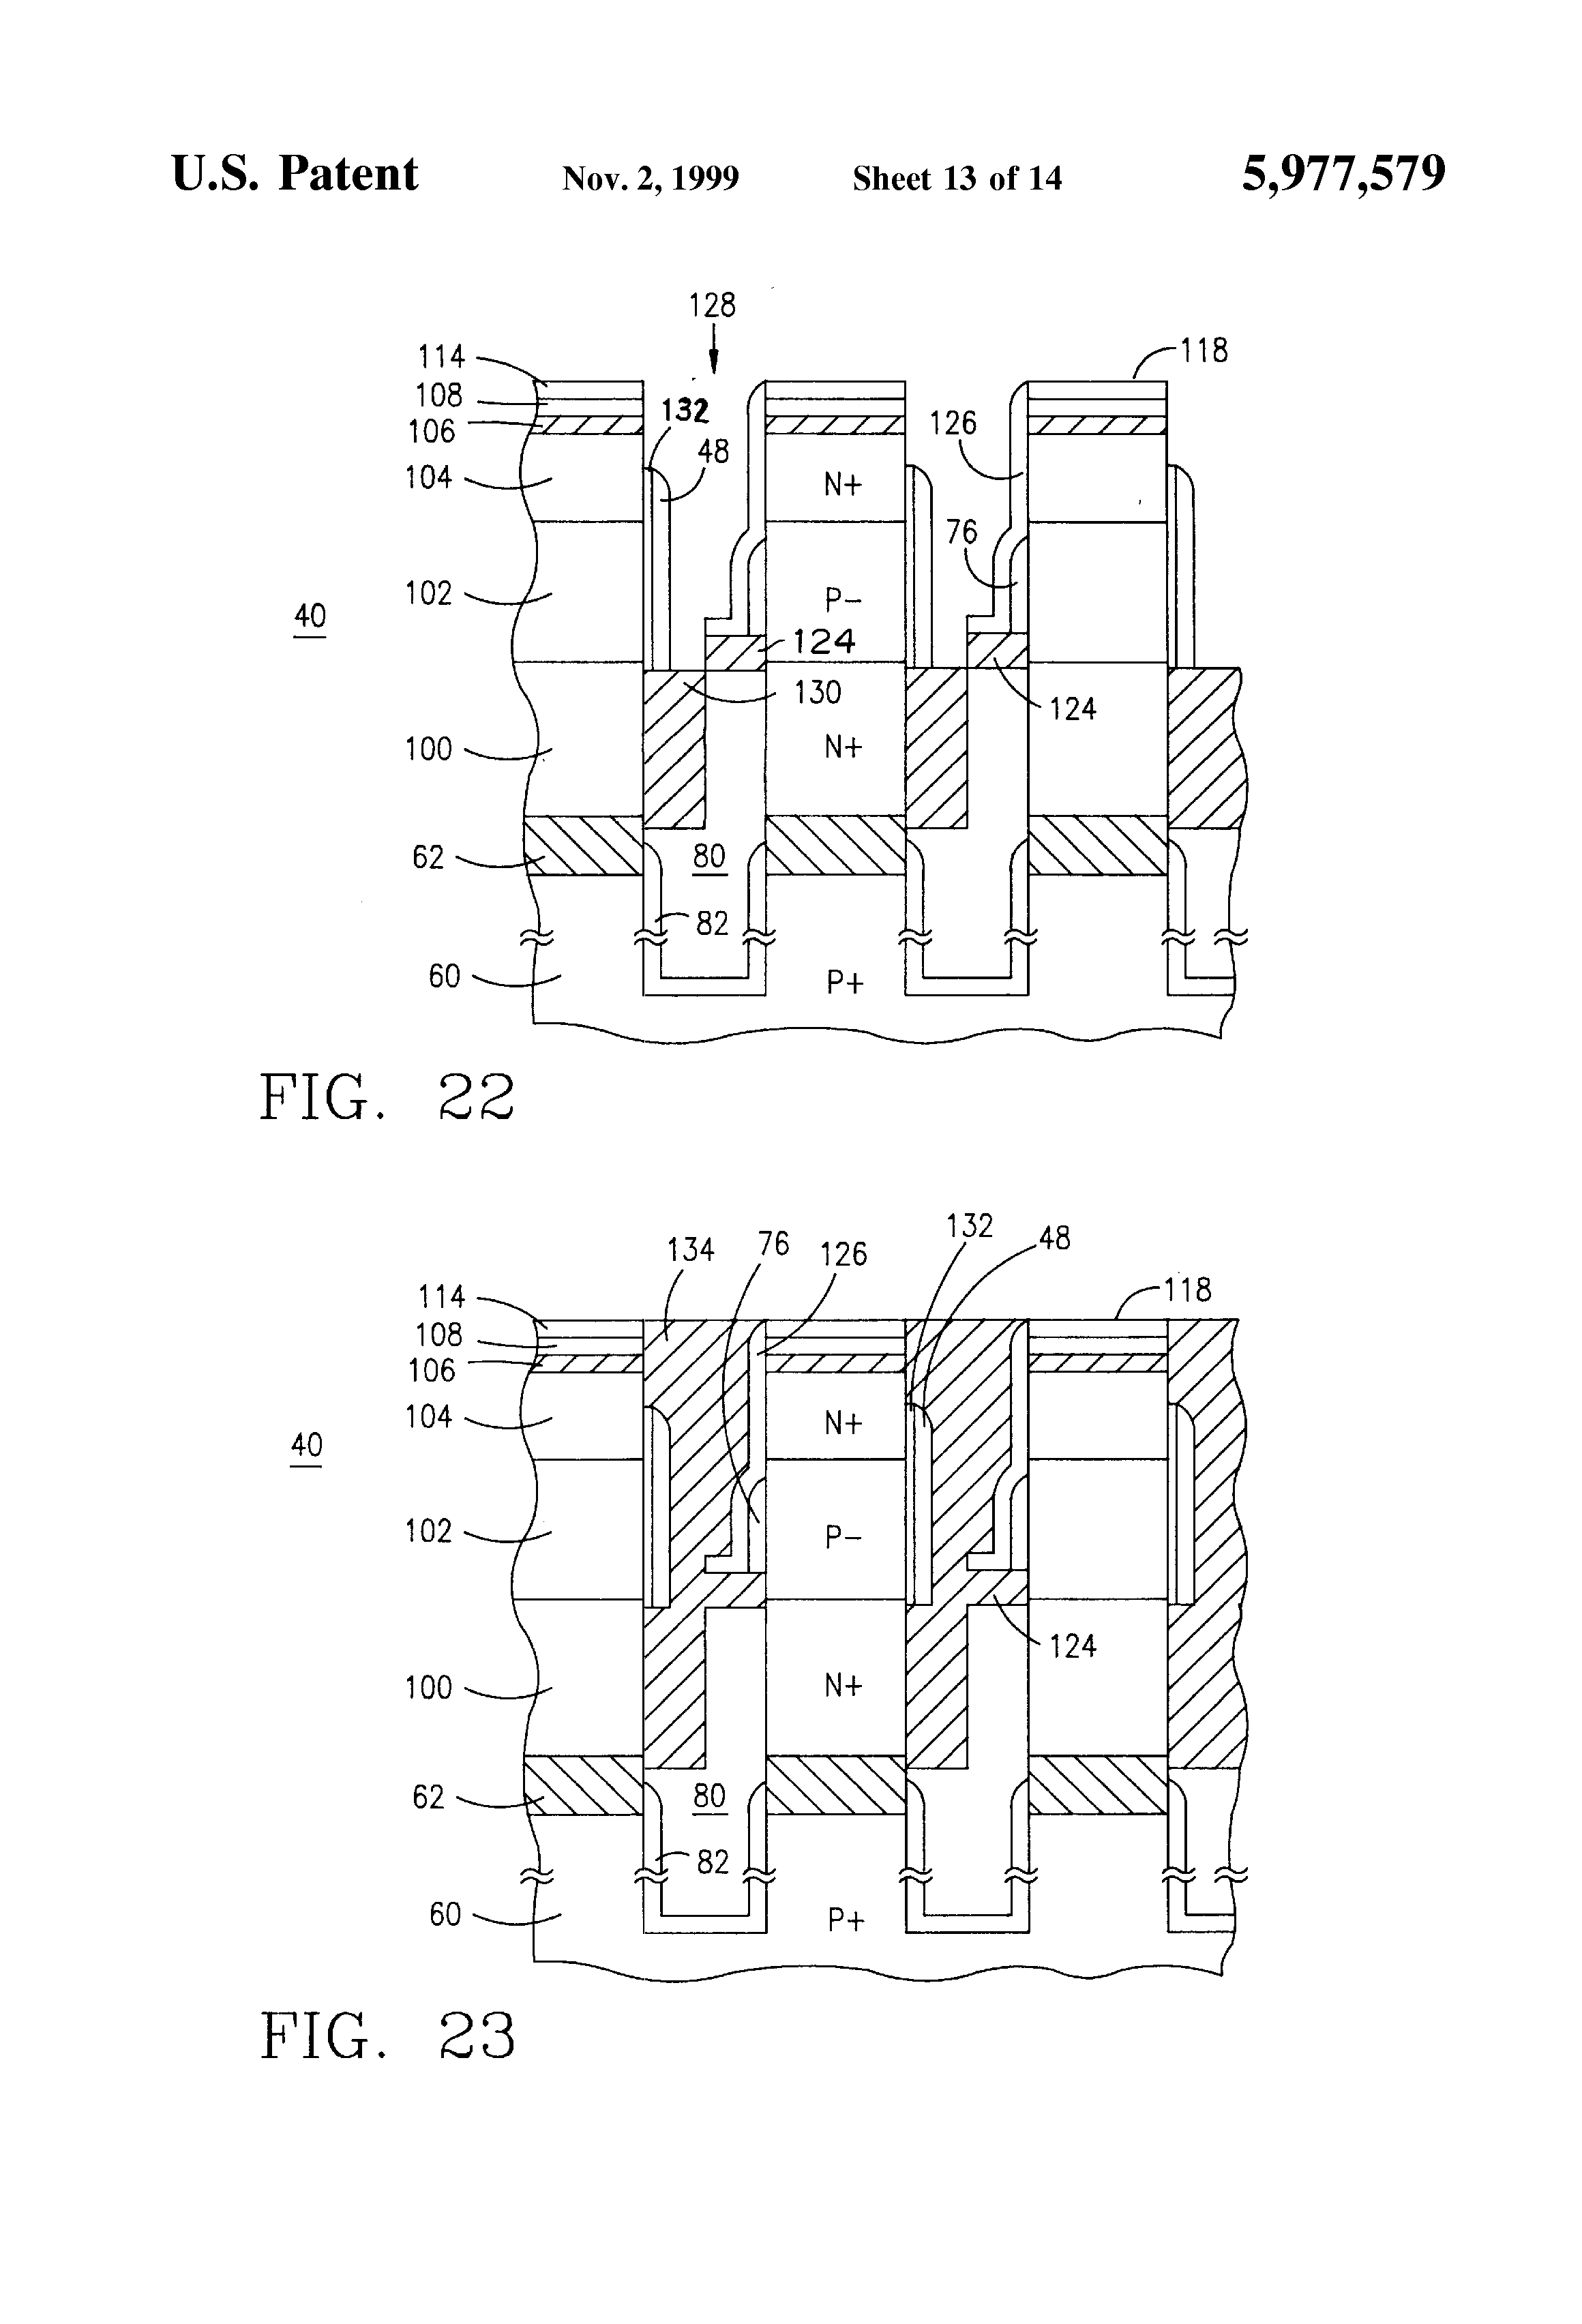 trench dram cell with vertical device and buried word lines